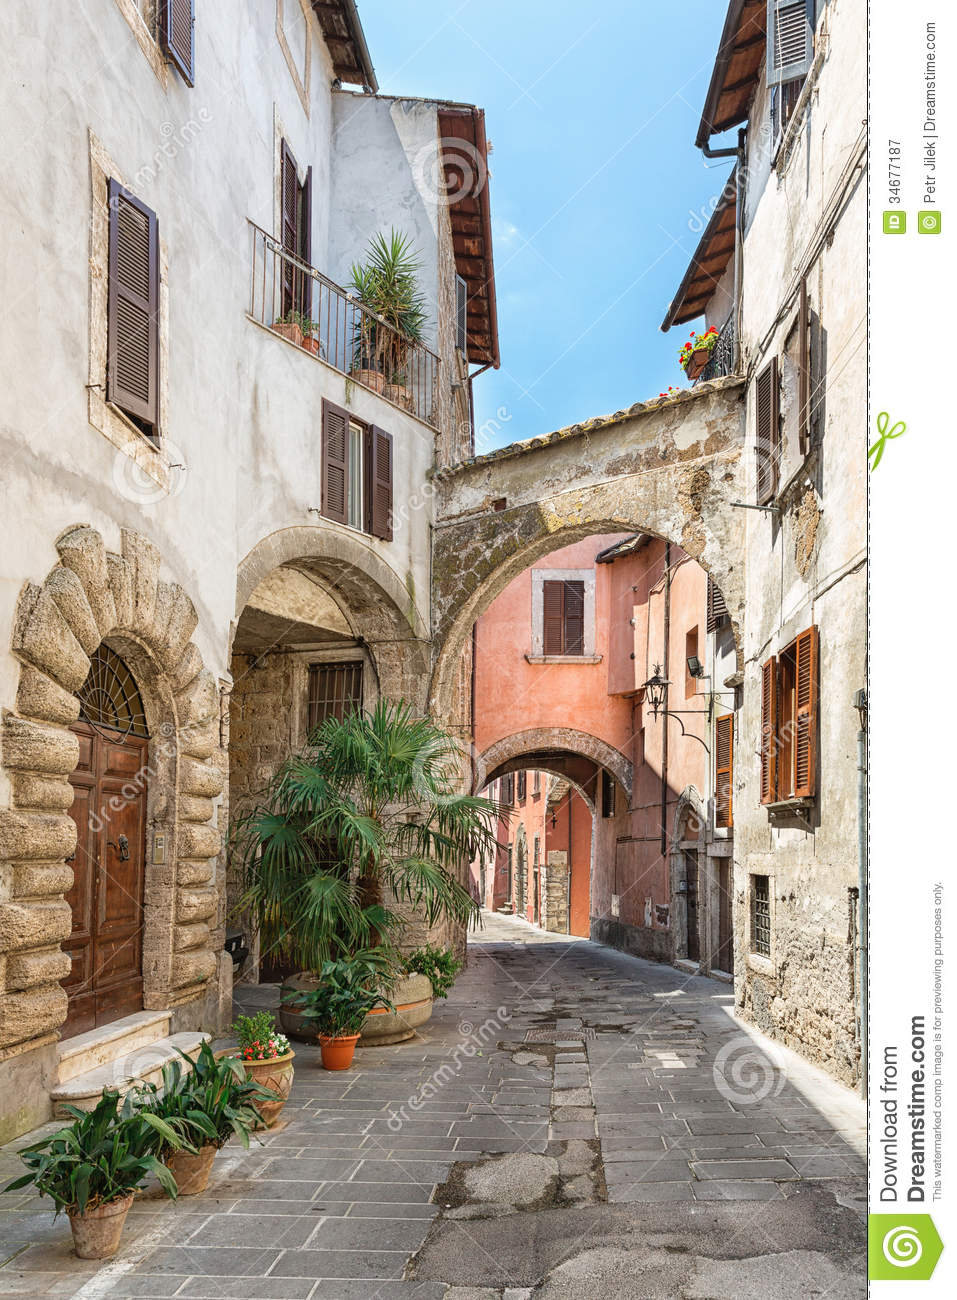 Royalty Free Stock Photography Pretty Street Ancient City Tuscany View Beautiful Little Old Town Italy Image34677187 also Jewel In A Bikini Photo further Romantic Bedroom Decorating in addition Beverly Hills Landscape Design Los Angeles Creates Gardens Stars furthermore The Rococo Style. on romantic style house